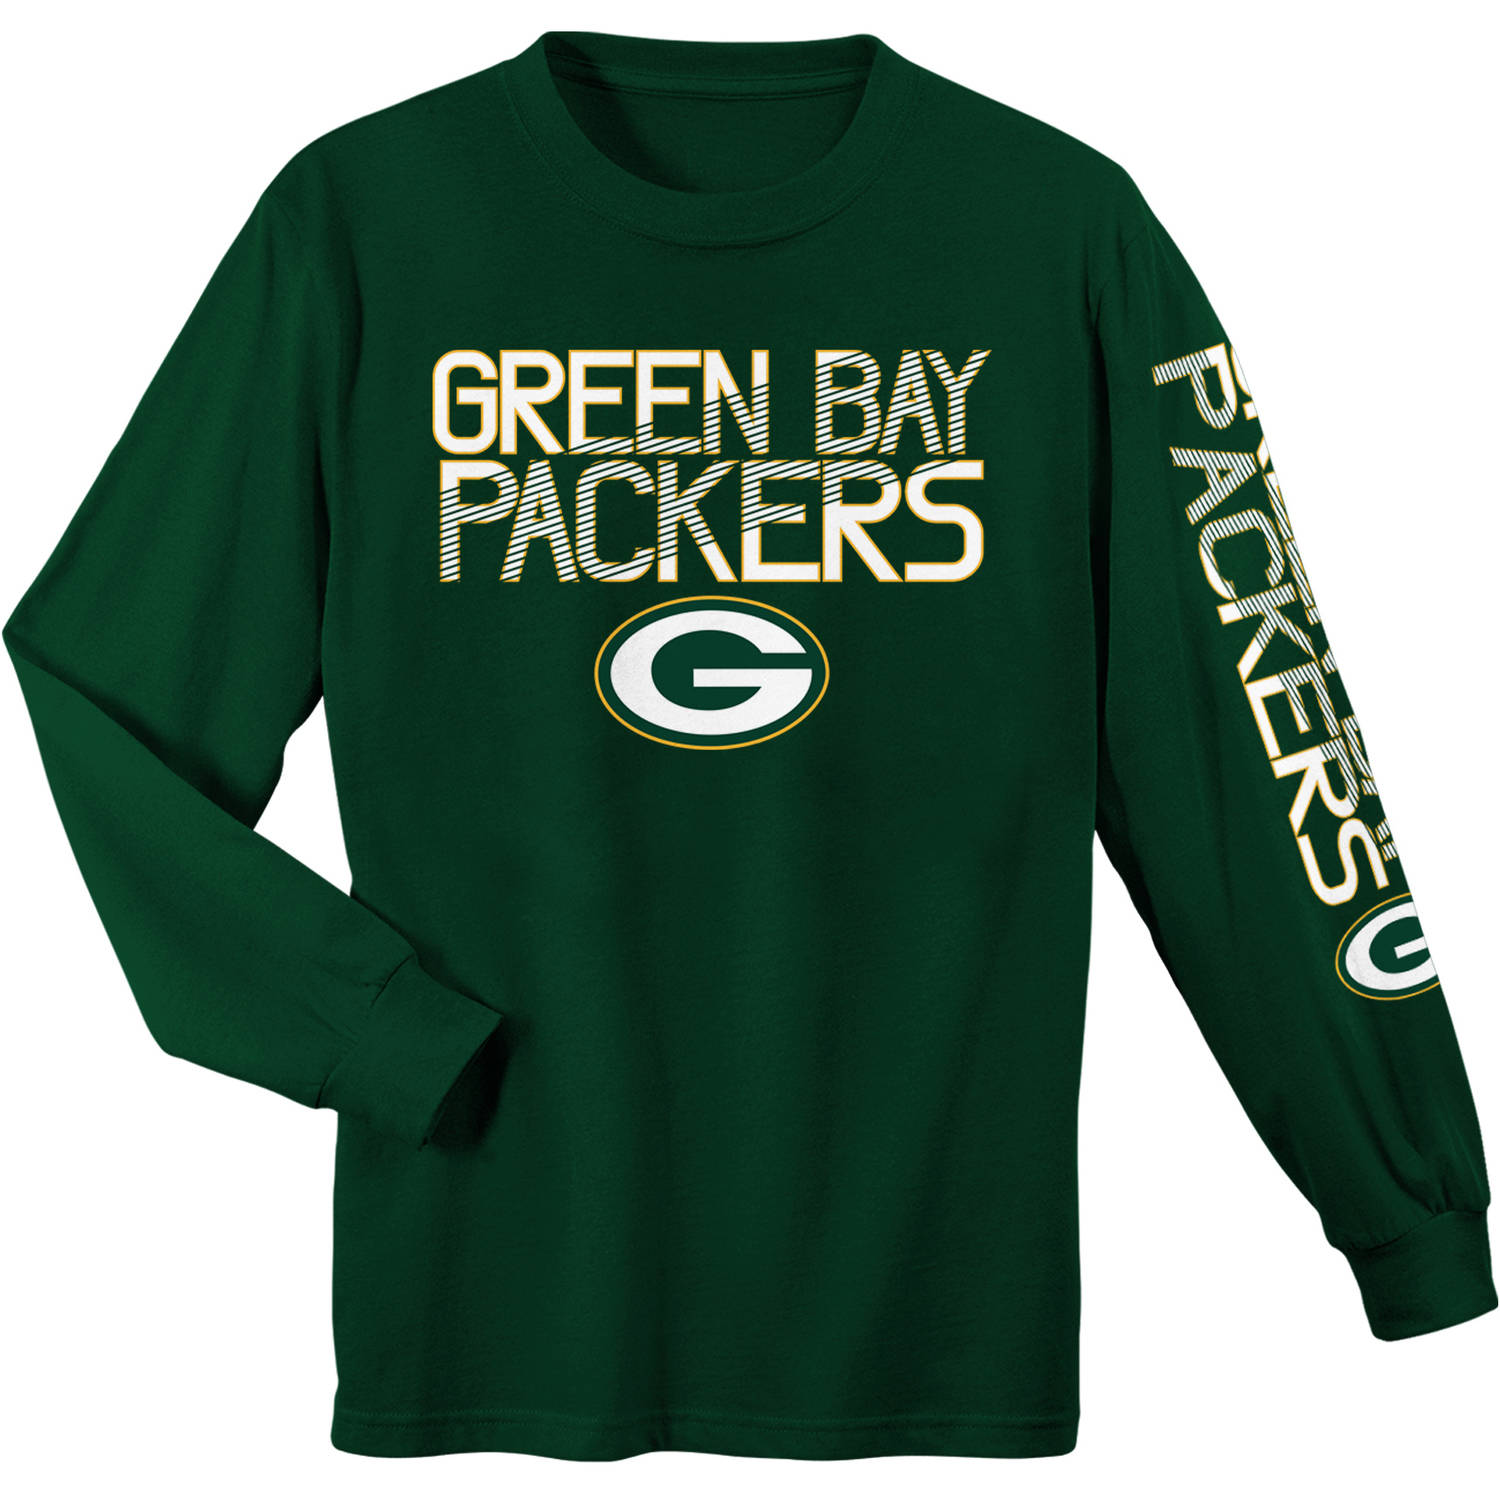 NFL Green Bay Packers Youth Long Sleeve Cotton Tee